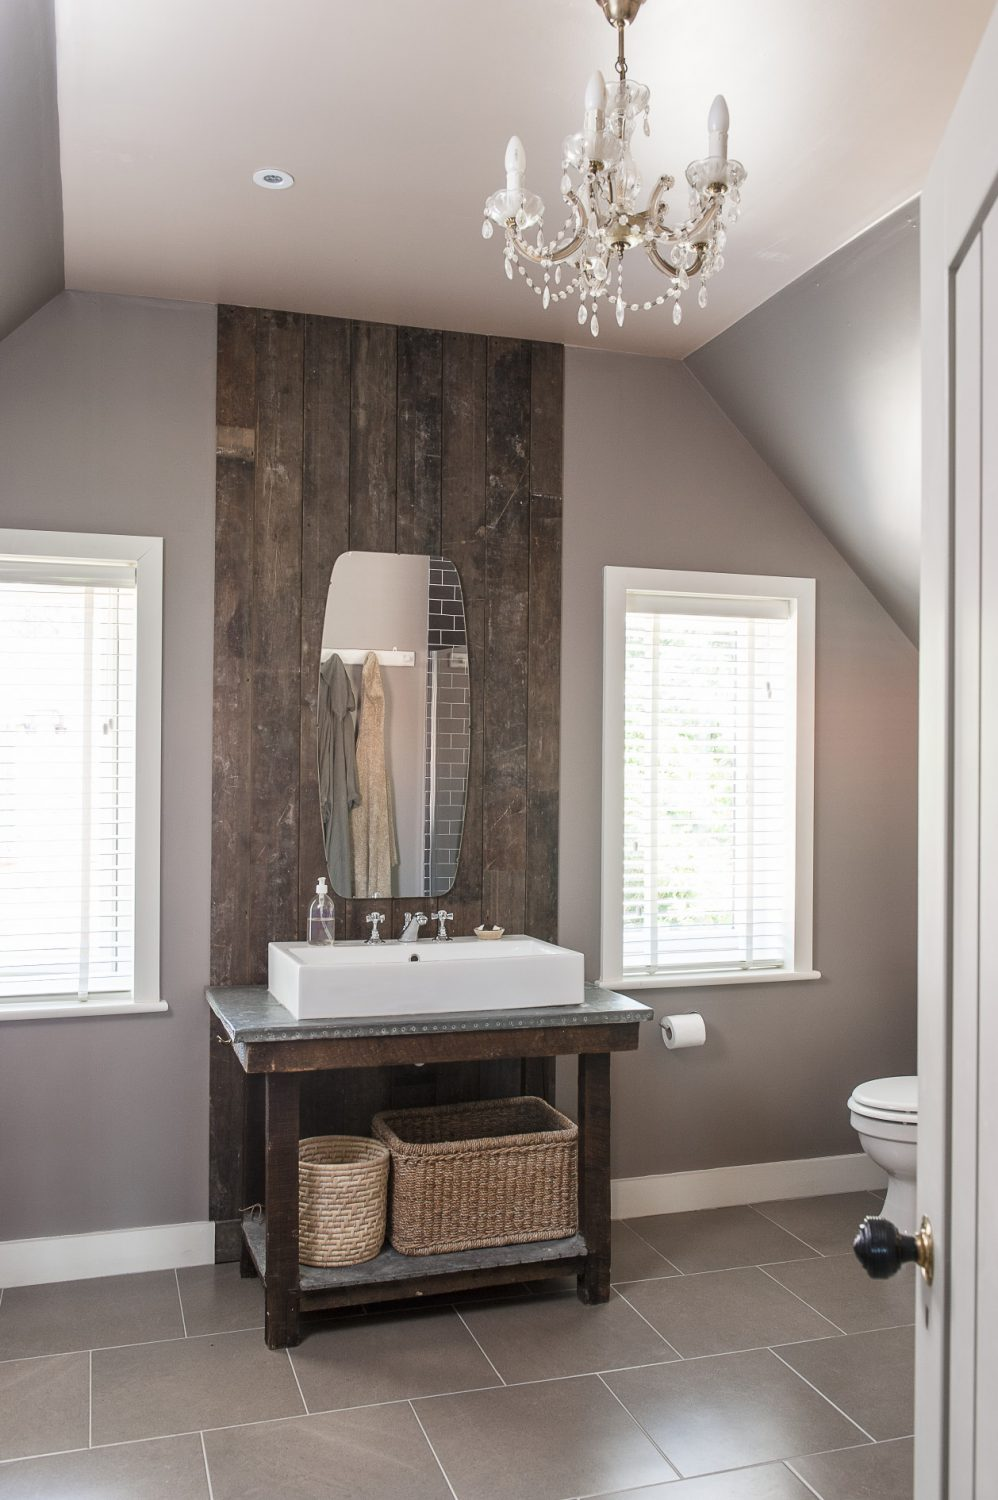 The bathroom is a gentle mushroom with cool white woodwork. The basin sits on an antique lead-topped table backed by a ceiling height panel made from reclaimed floorboards